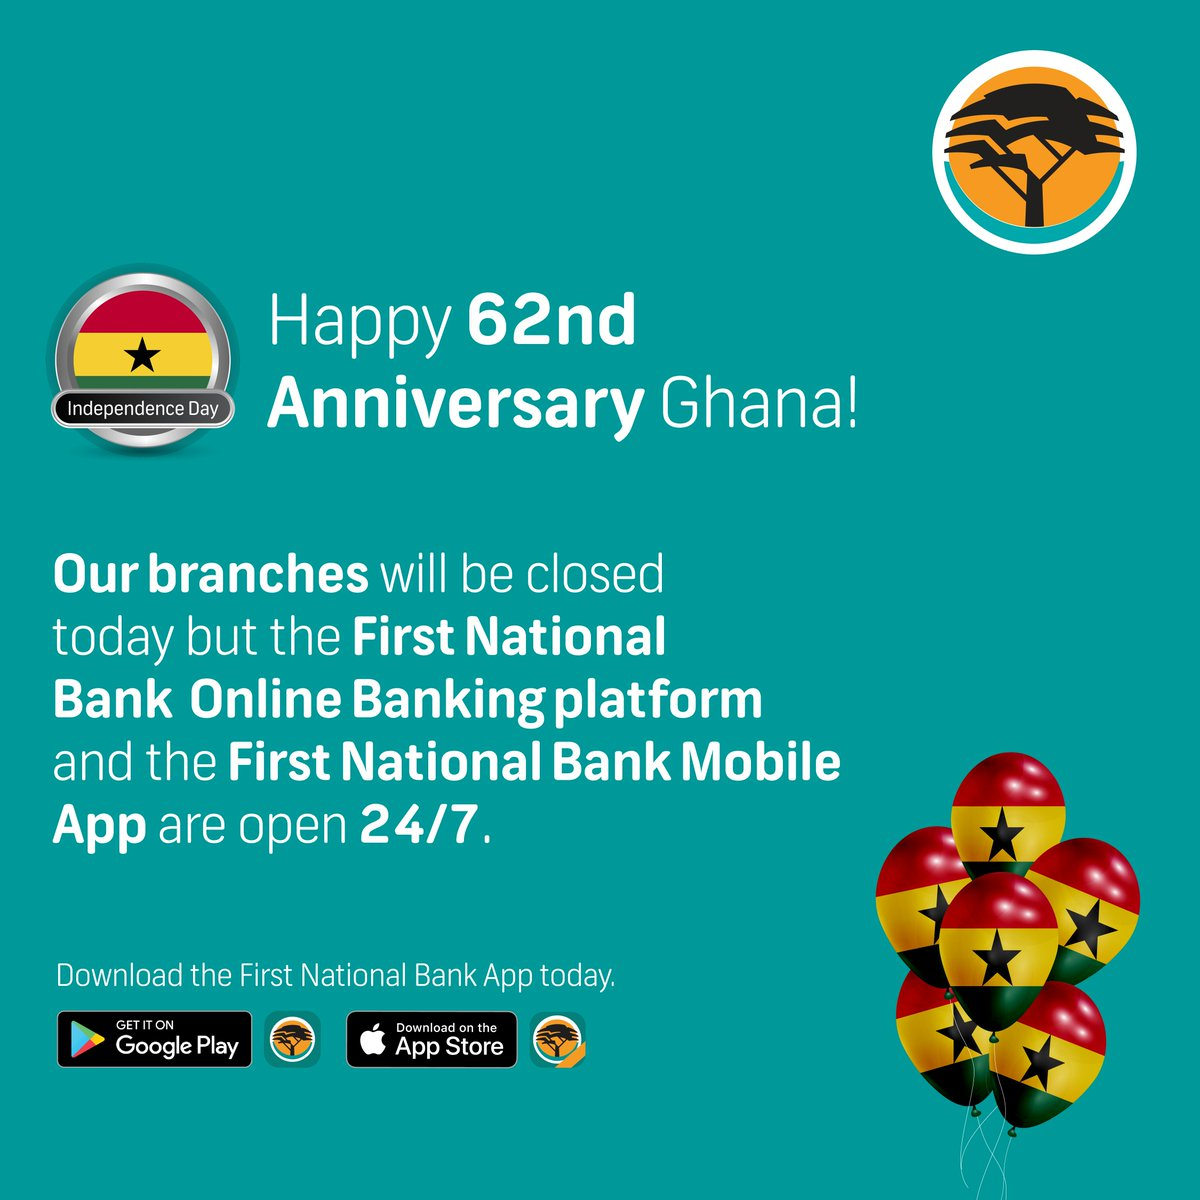 First National Bank GH on Twitter: